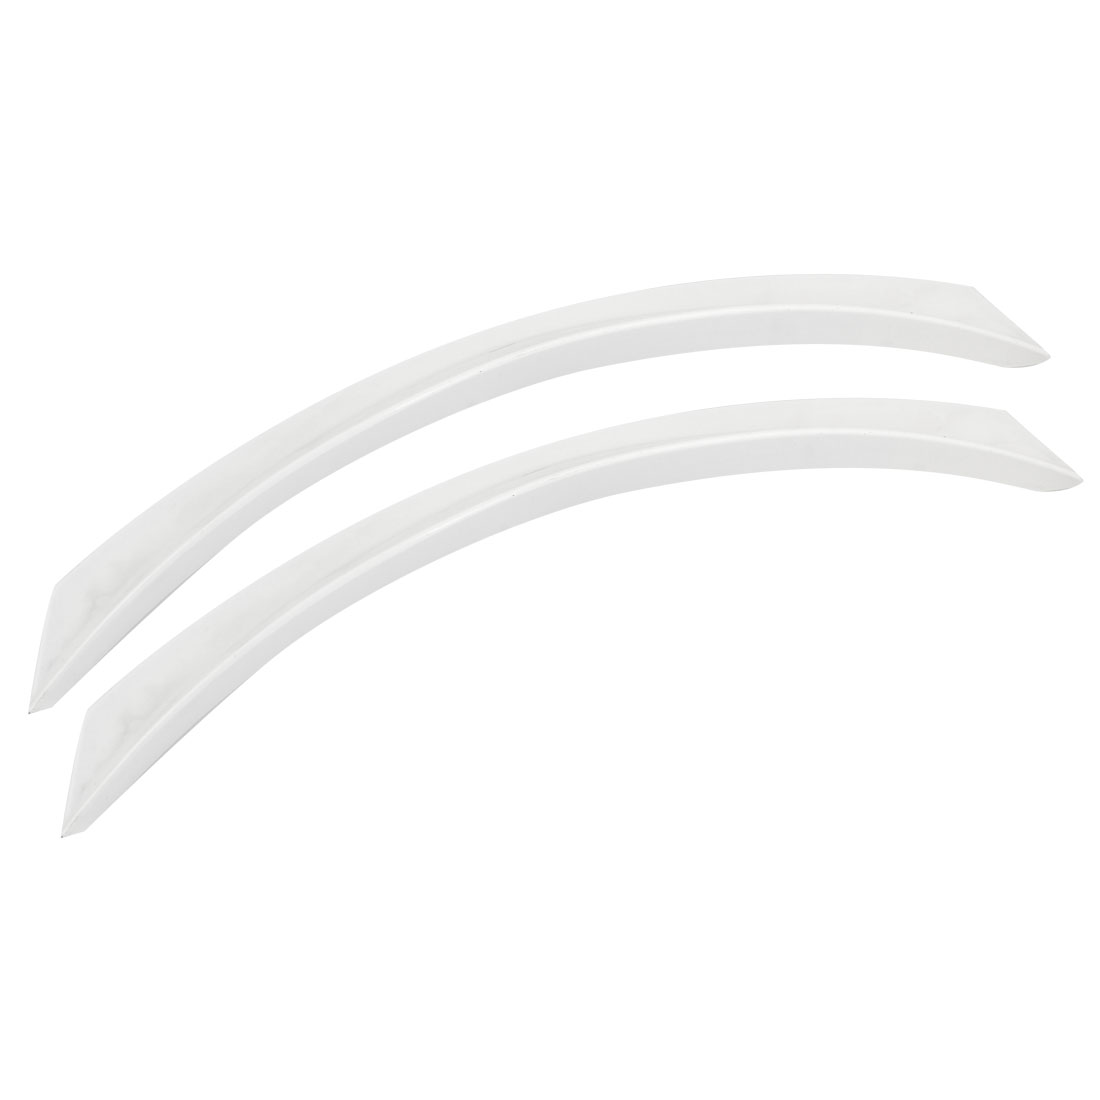 2 Pcs Vehicle White Plastic Self Adhesive Wheel Eyebrow Trim Strip Sticker